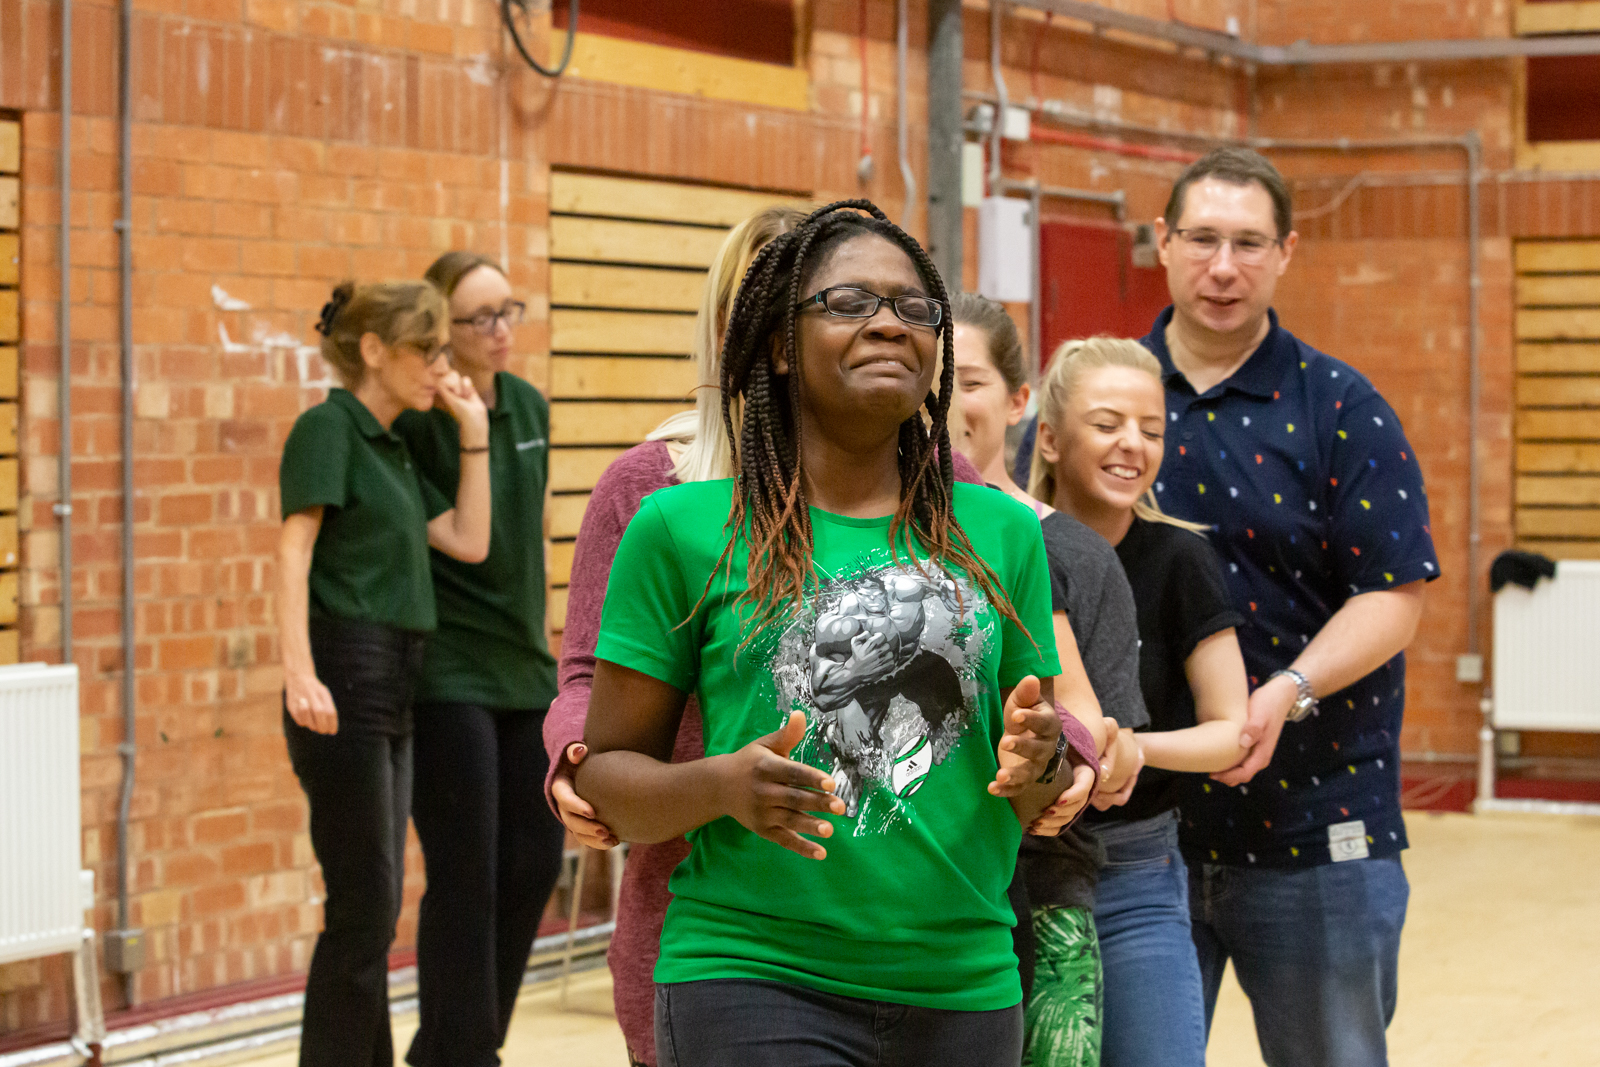 develop trust and communication with our stage combat team building experience